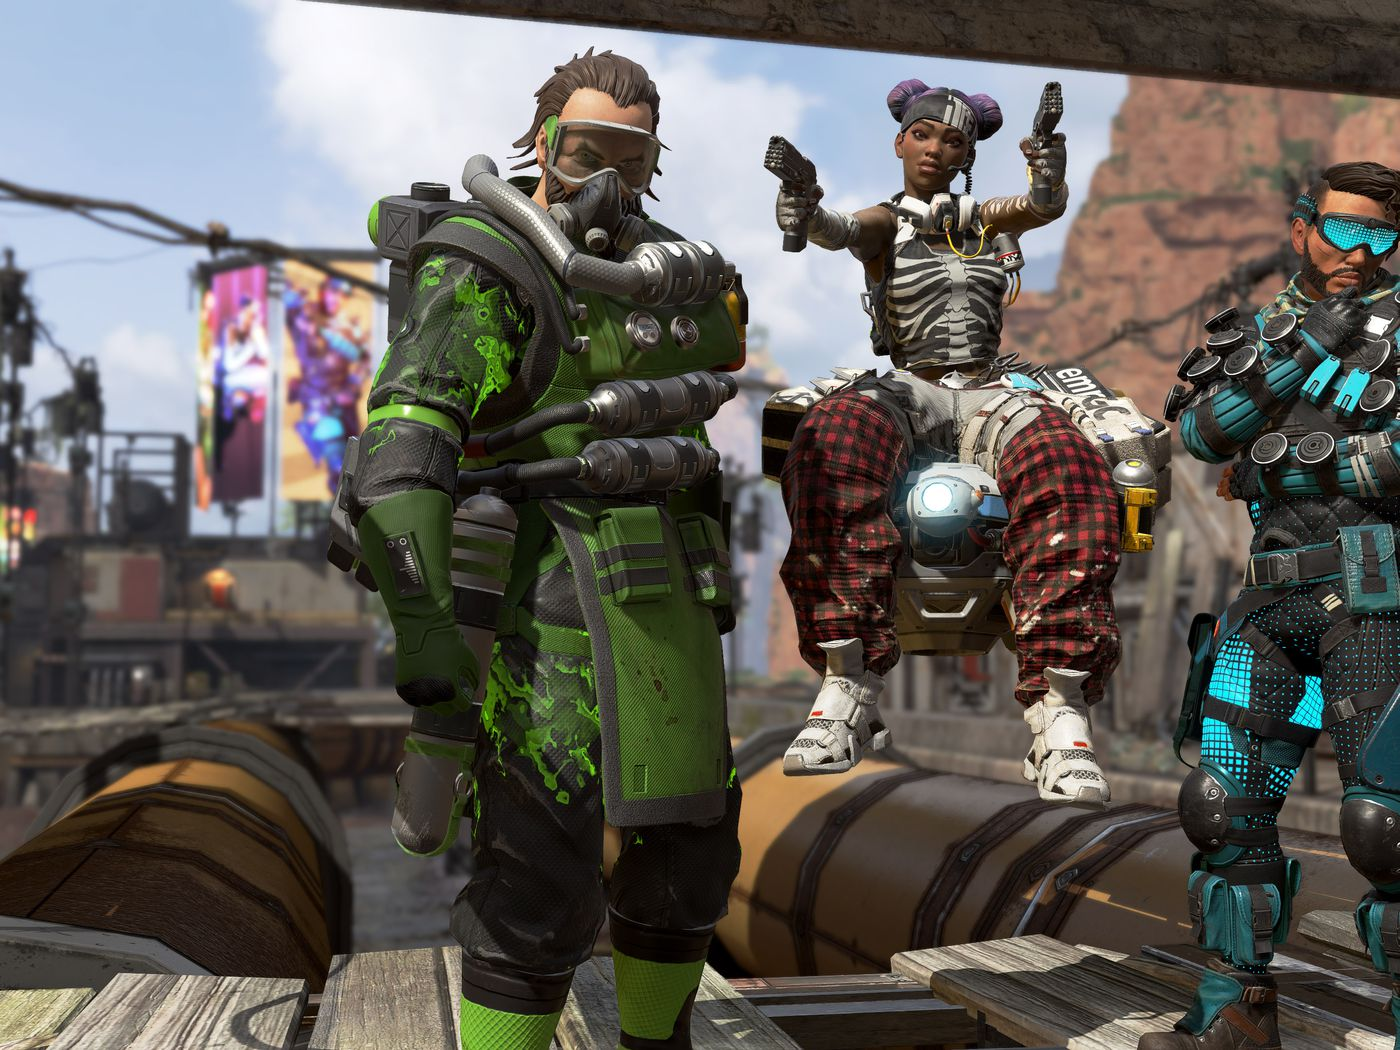 Apex Legends is a Fortnite-style shooter from the creators